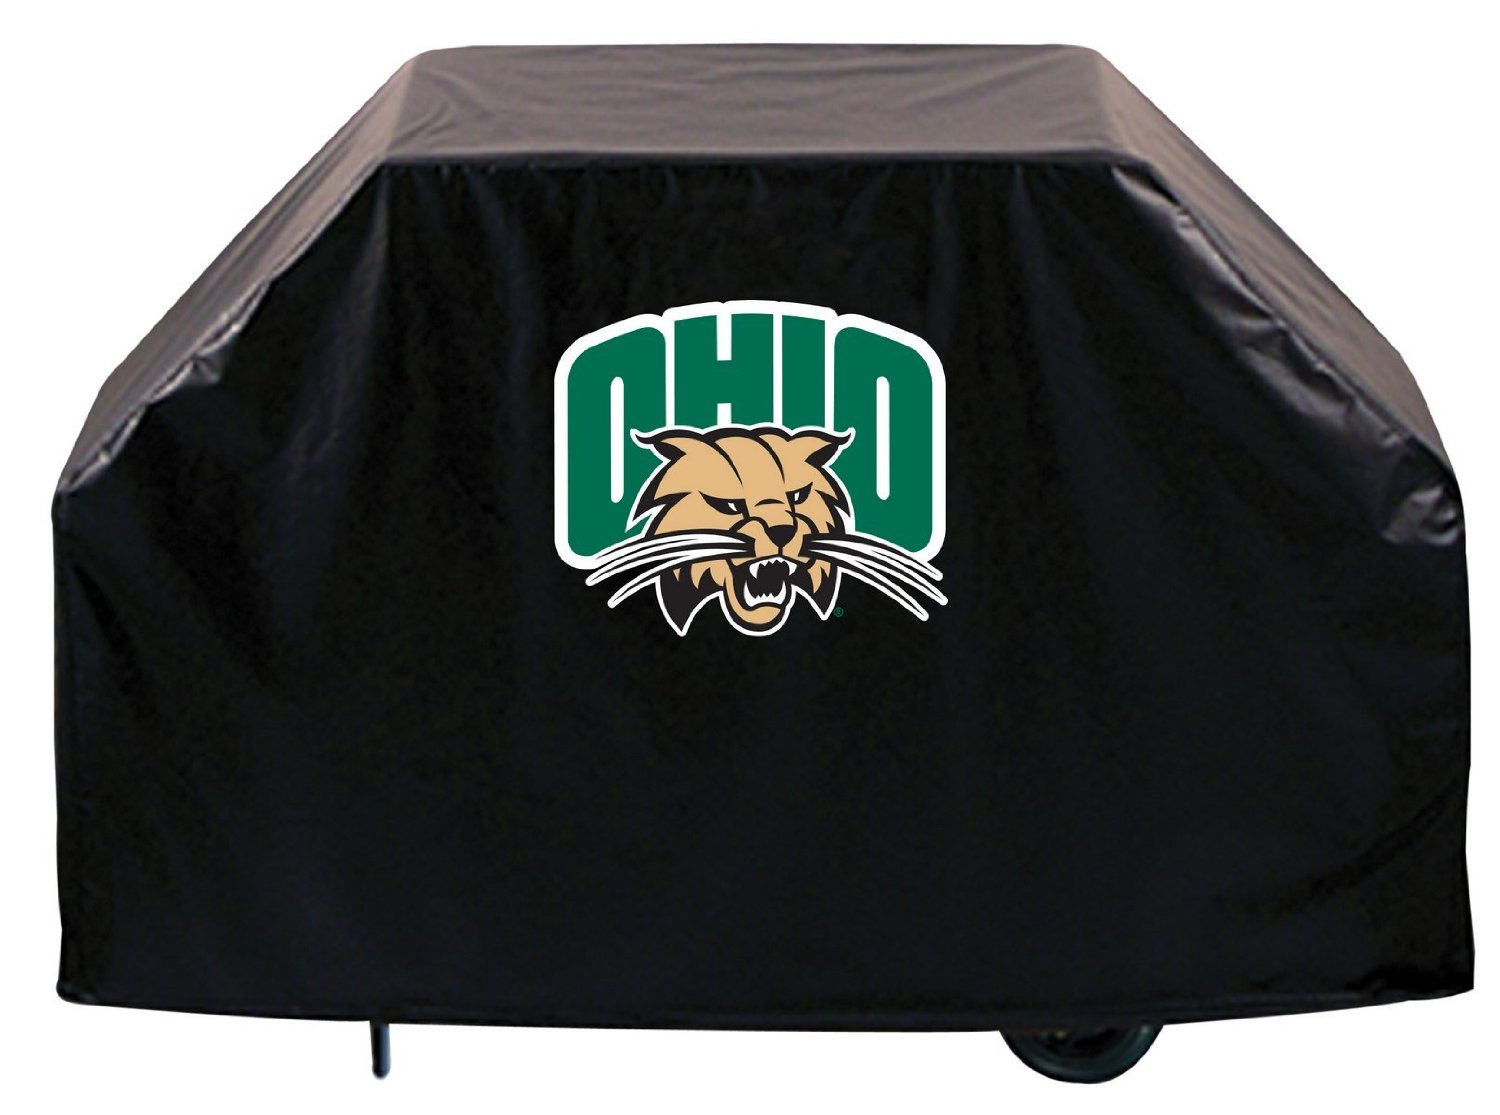 Team Sports Covers Northwestern Grill Cover with Wildcats Logo on Black Vinyl